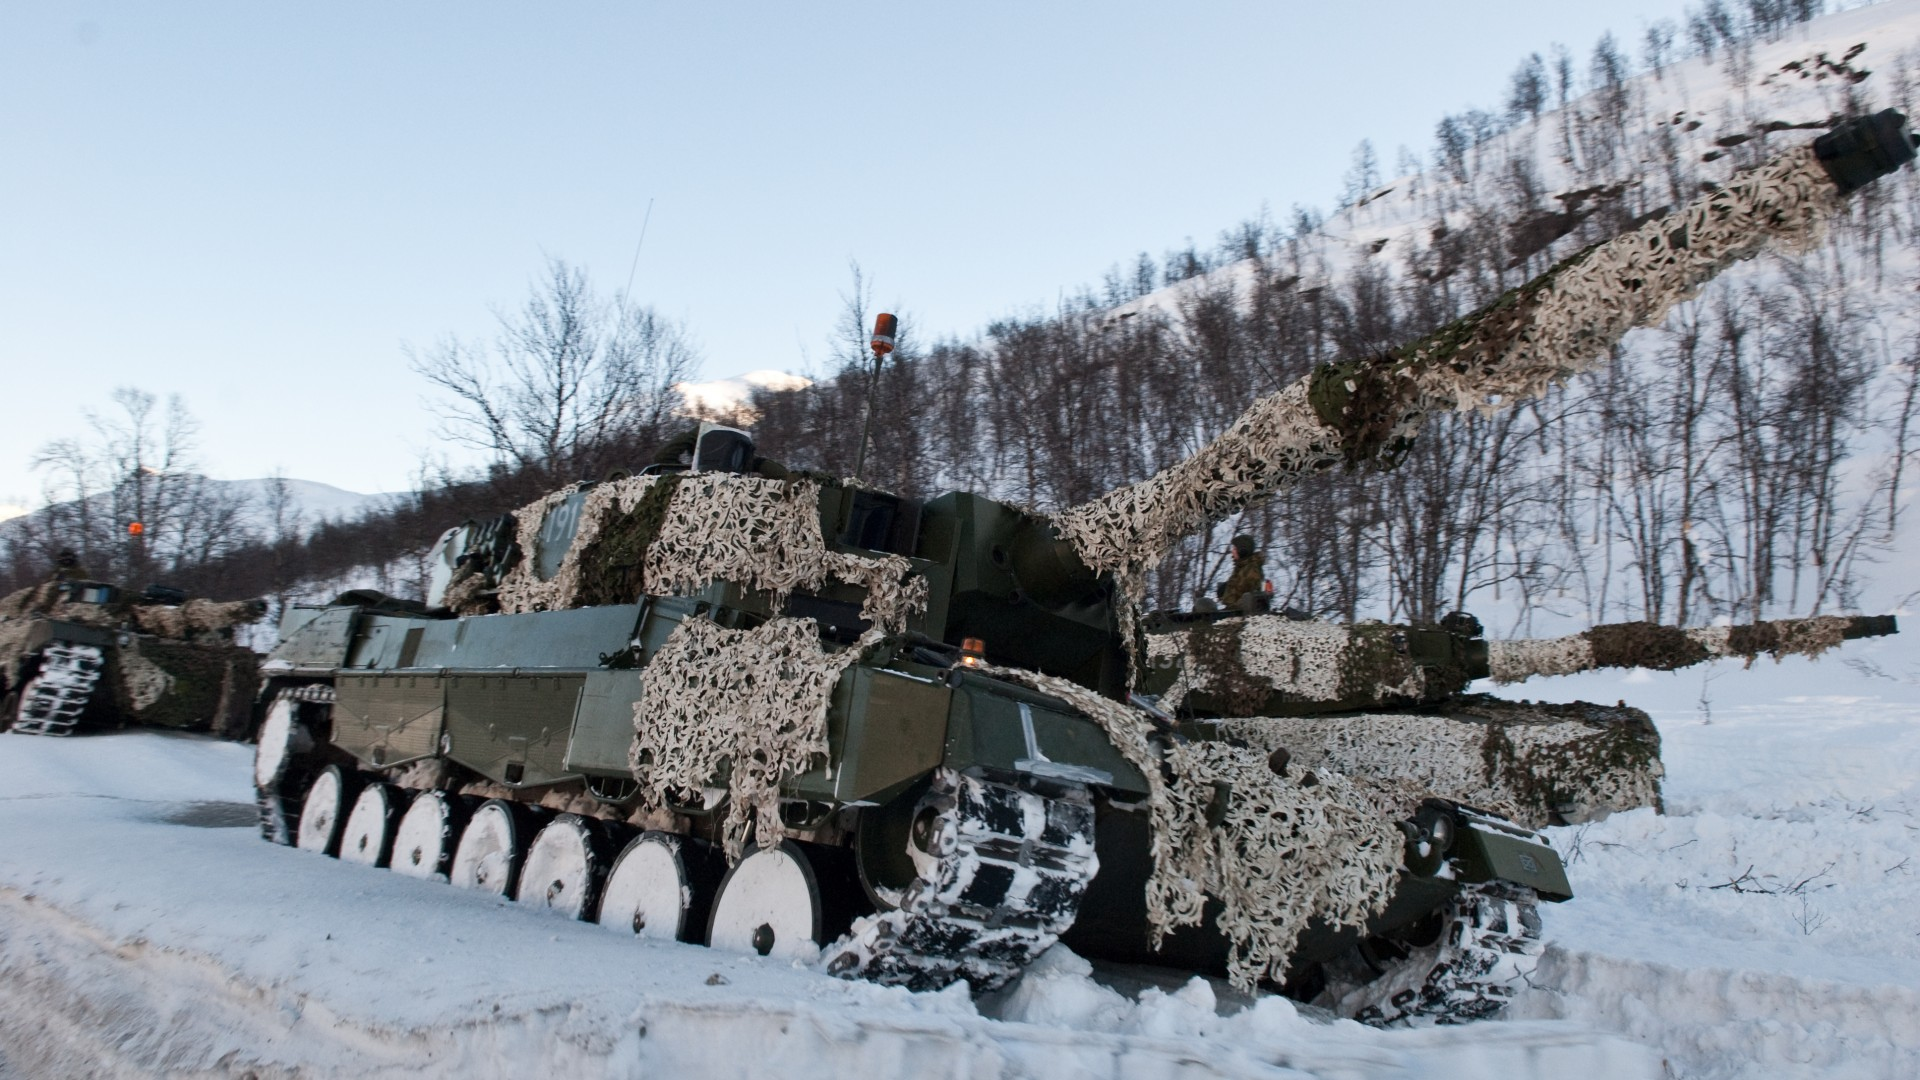 Leopard 2, 2a6m, 2A5, MBT, tank, Norway, forest, camo, winter (horizontal)